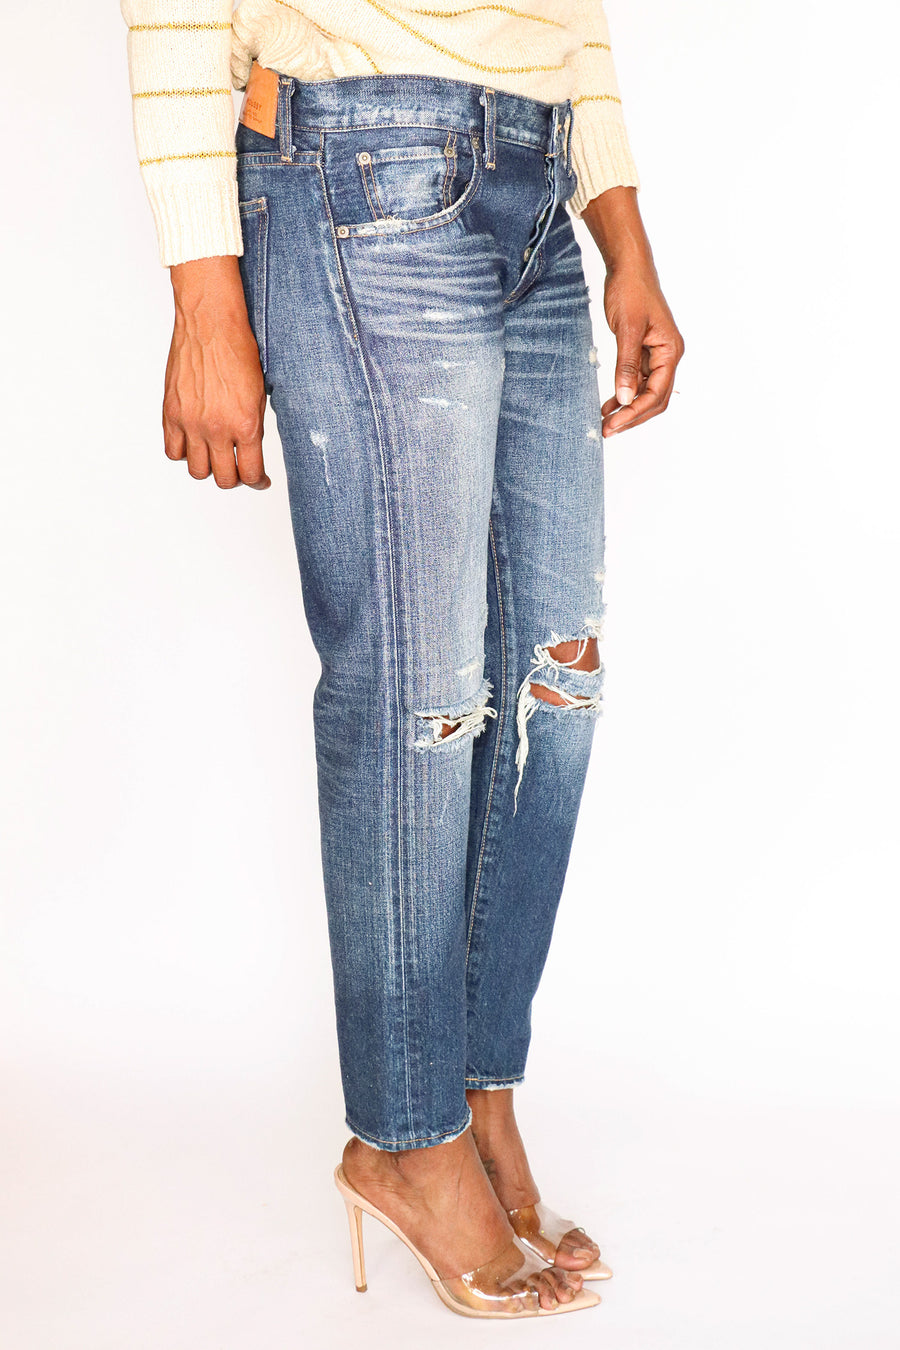 MOUSSY - Distressed Denim - Size 29